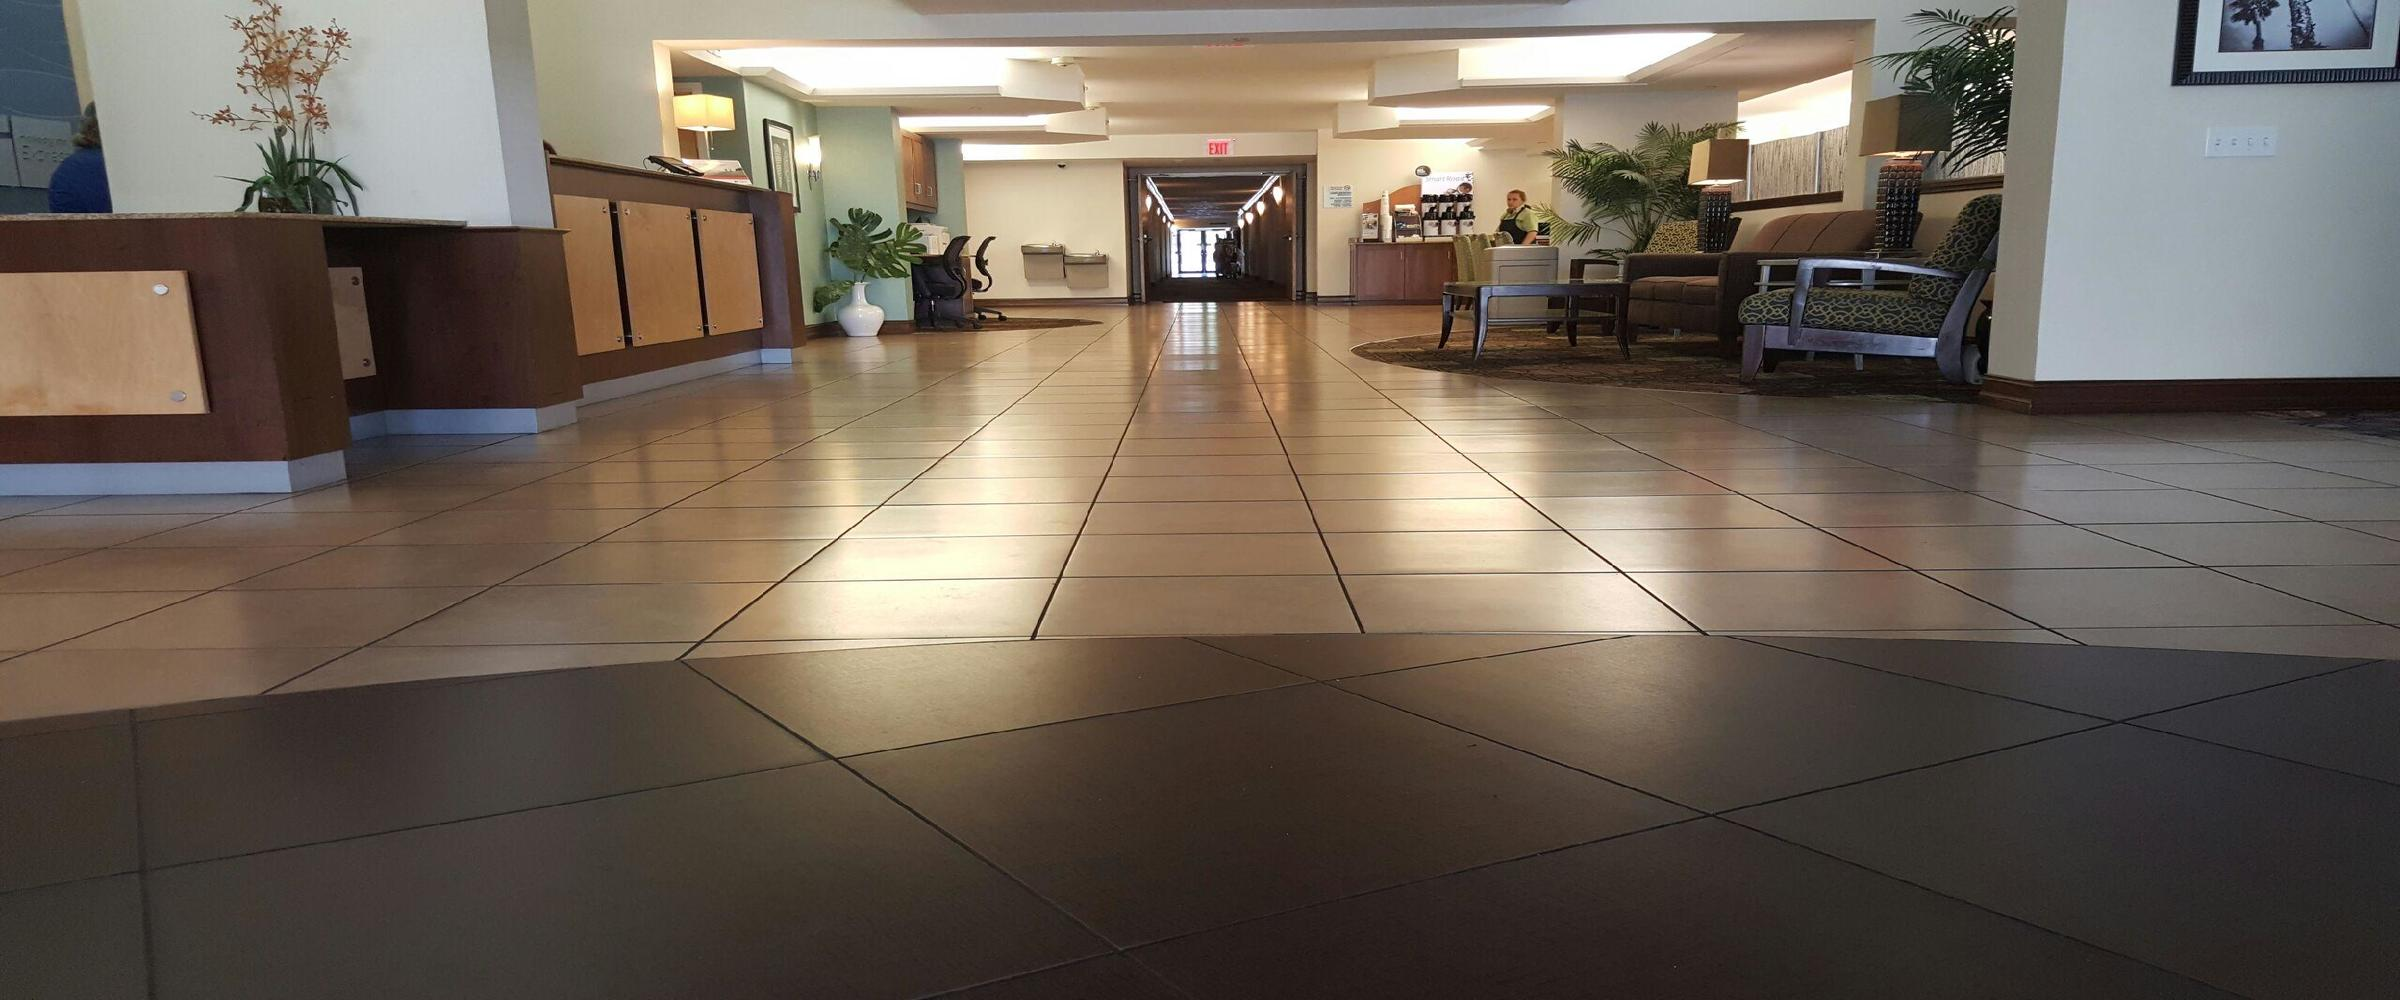 commercial tile grout cleaning